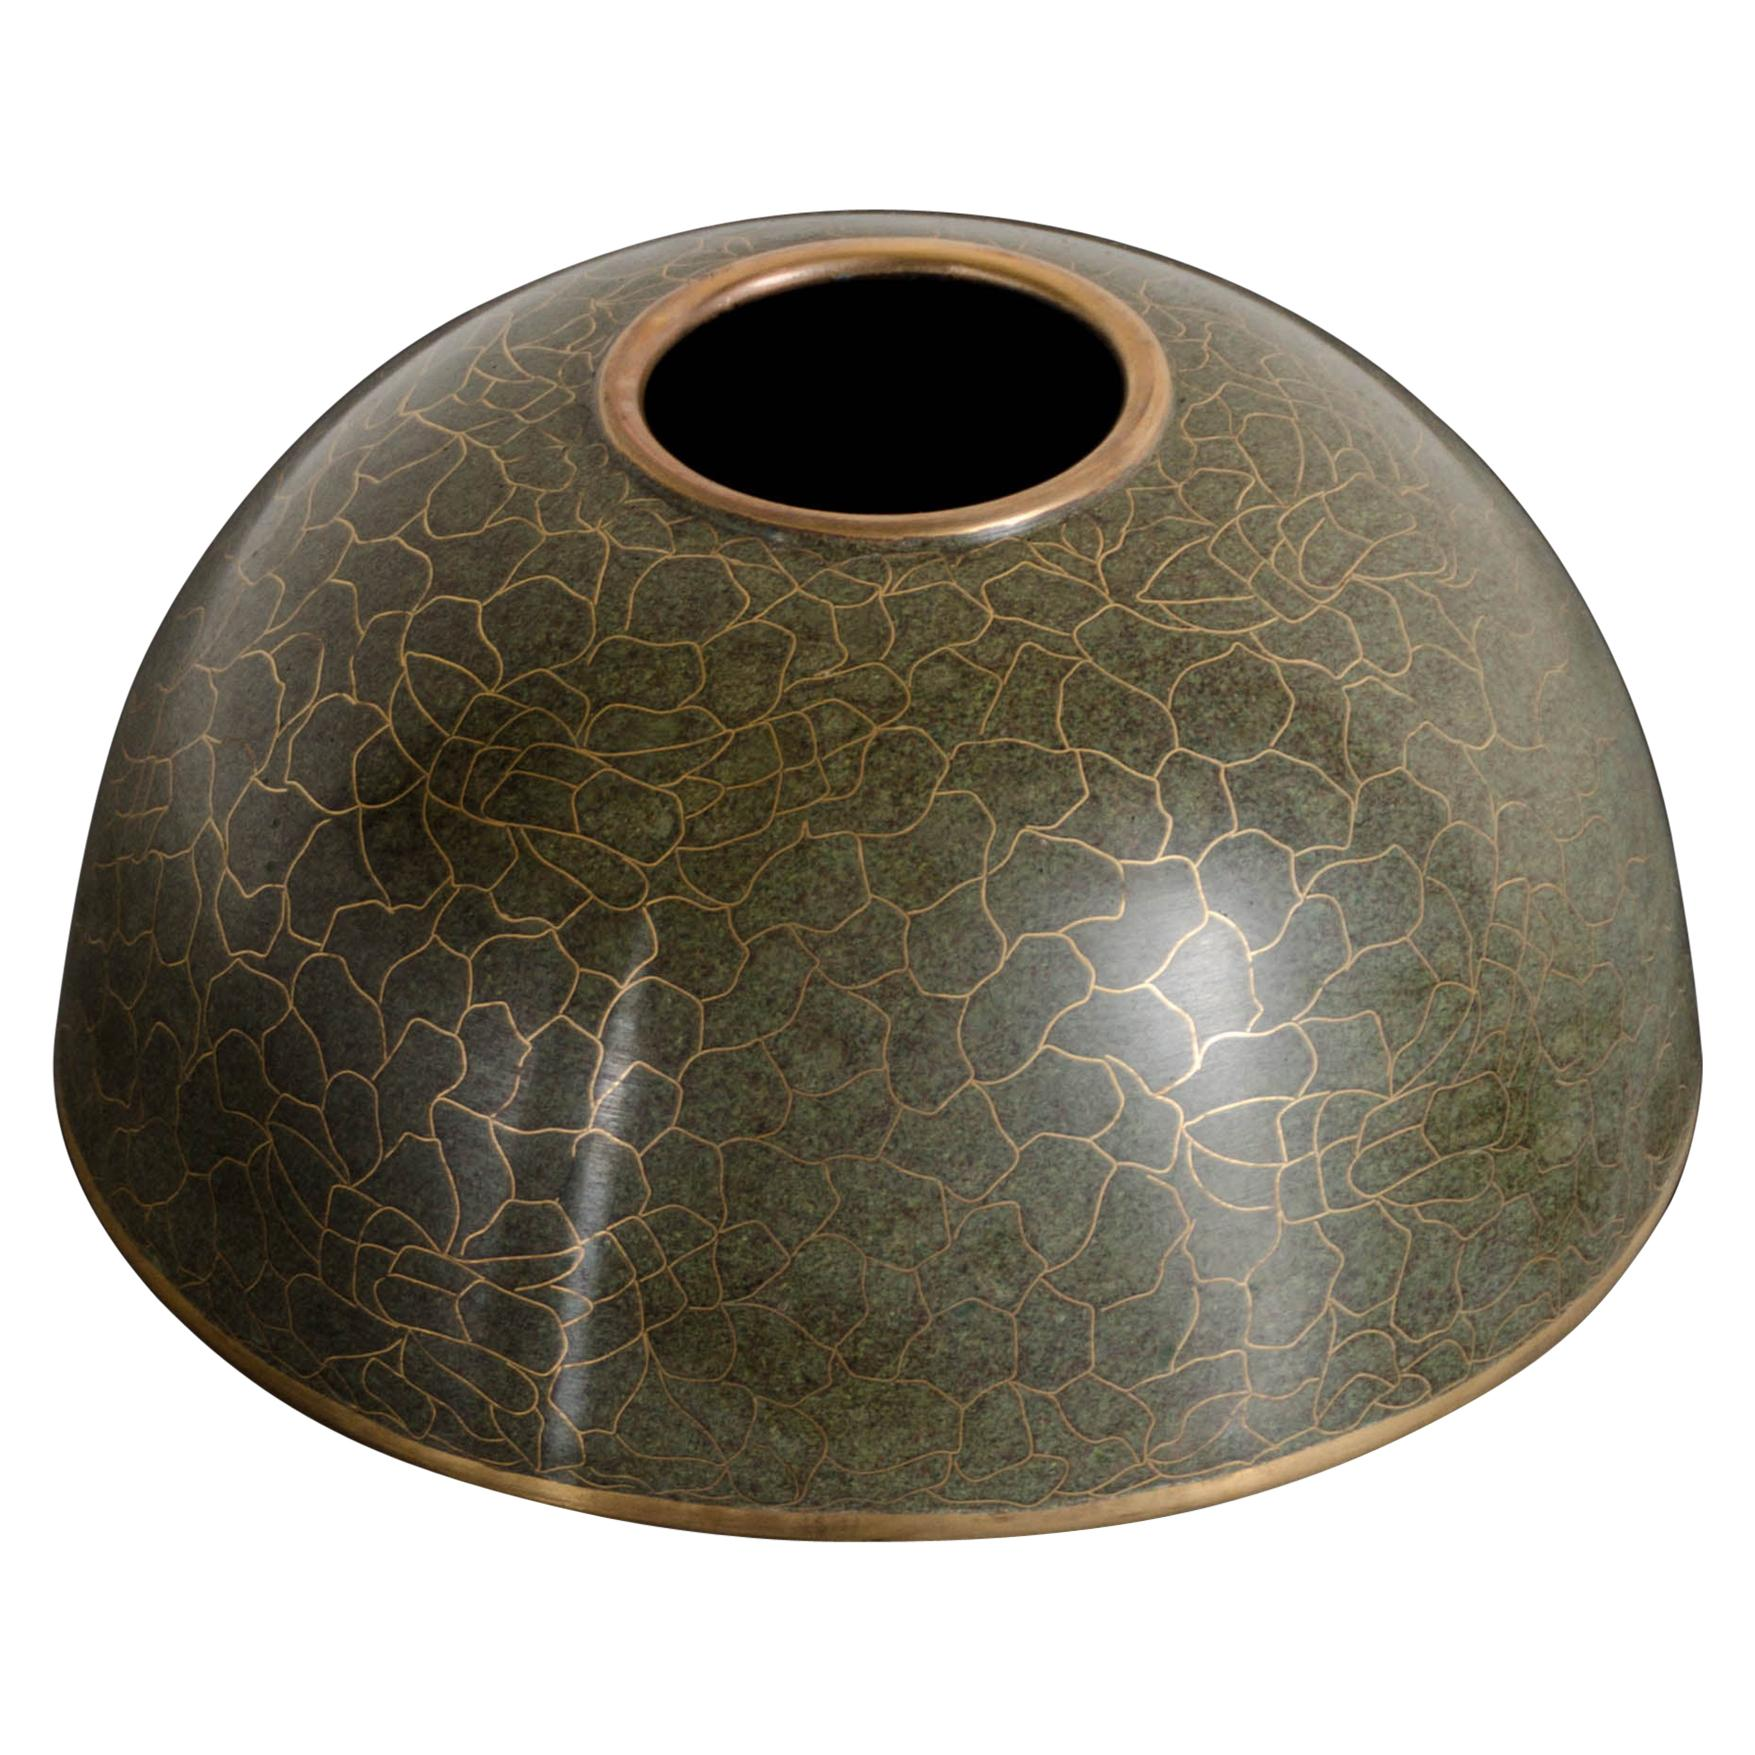 Bud Vase, Verde, Web Design by Robert Kuo, Cloisonne, Limited Edition